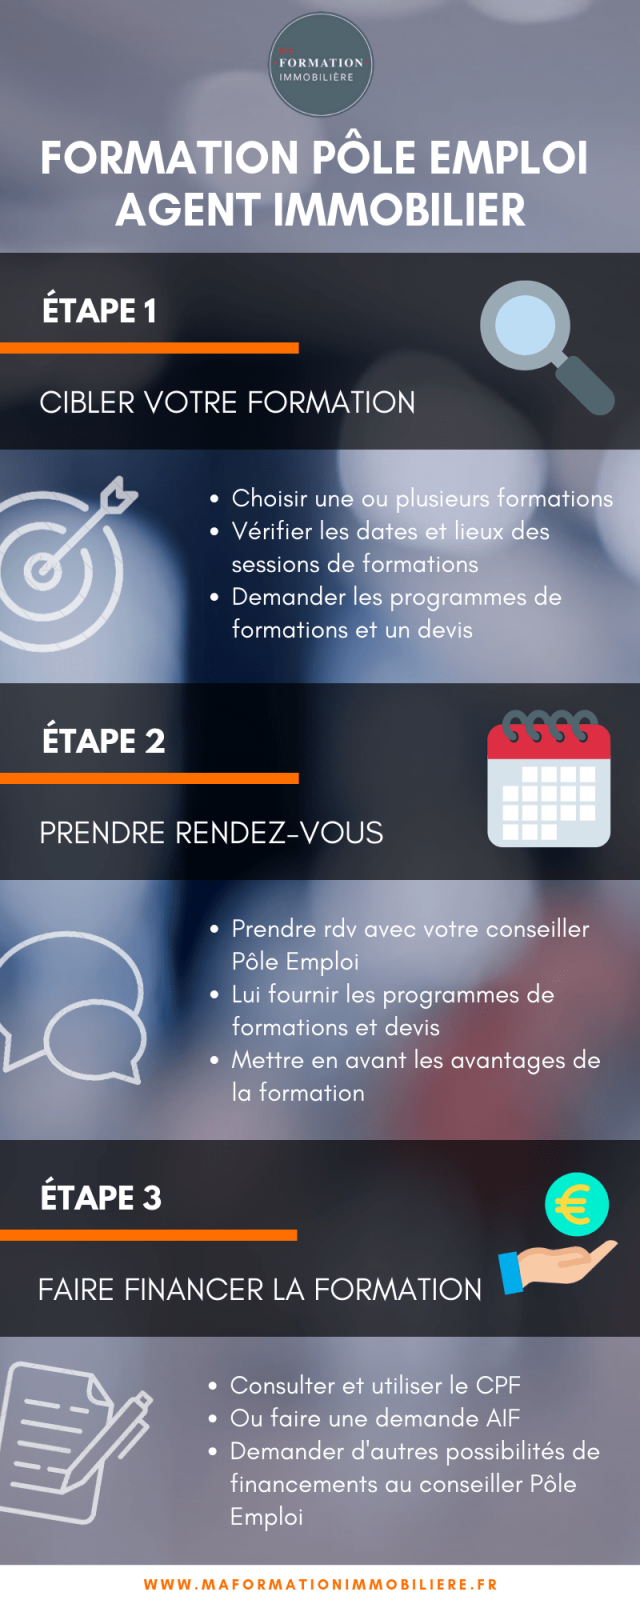 Formation Pole Emploi Agent Immobilier Mfi